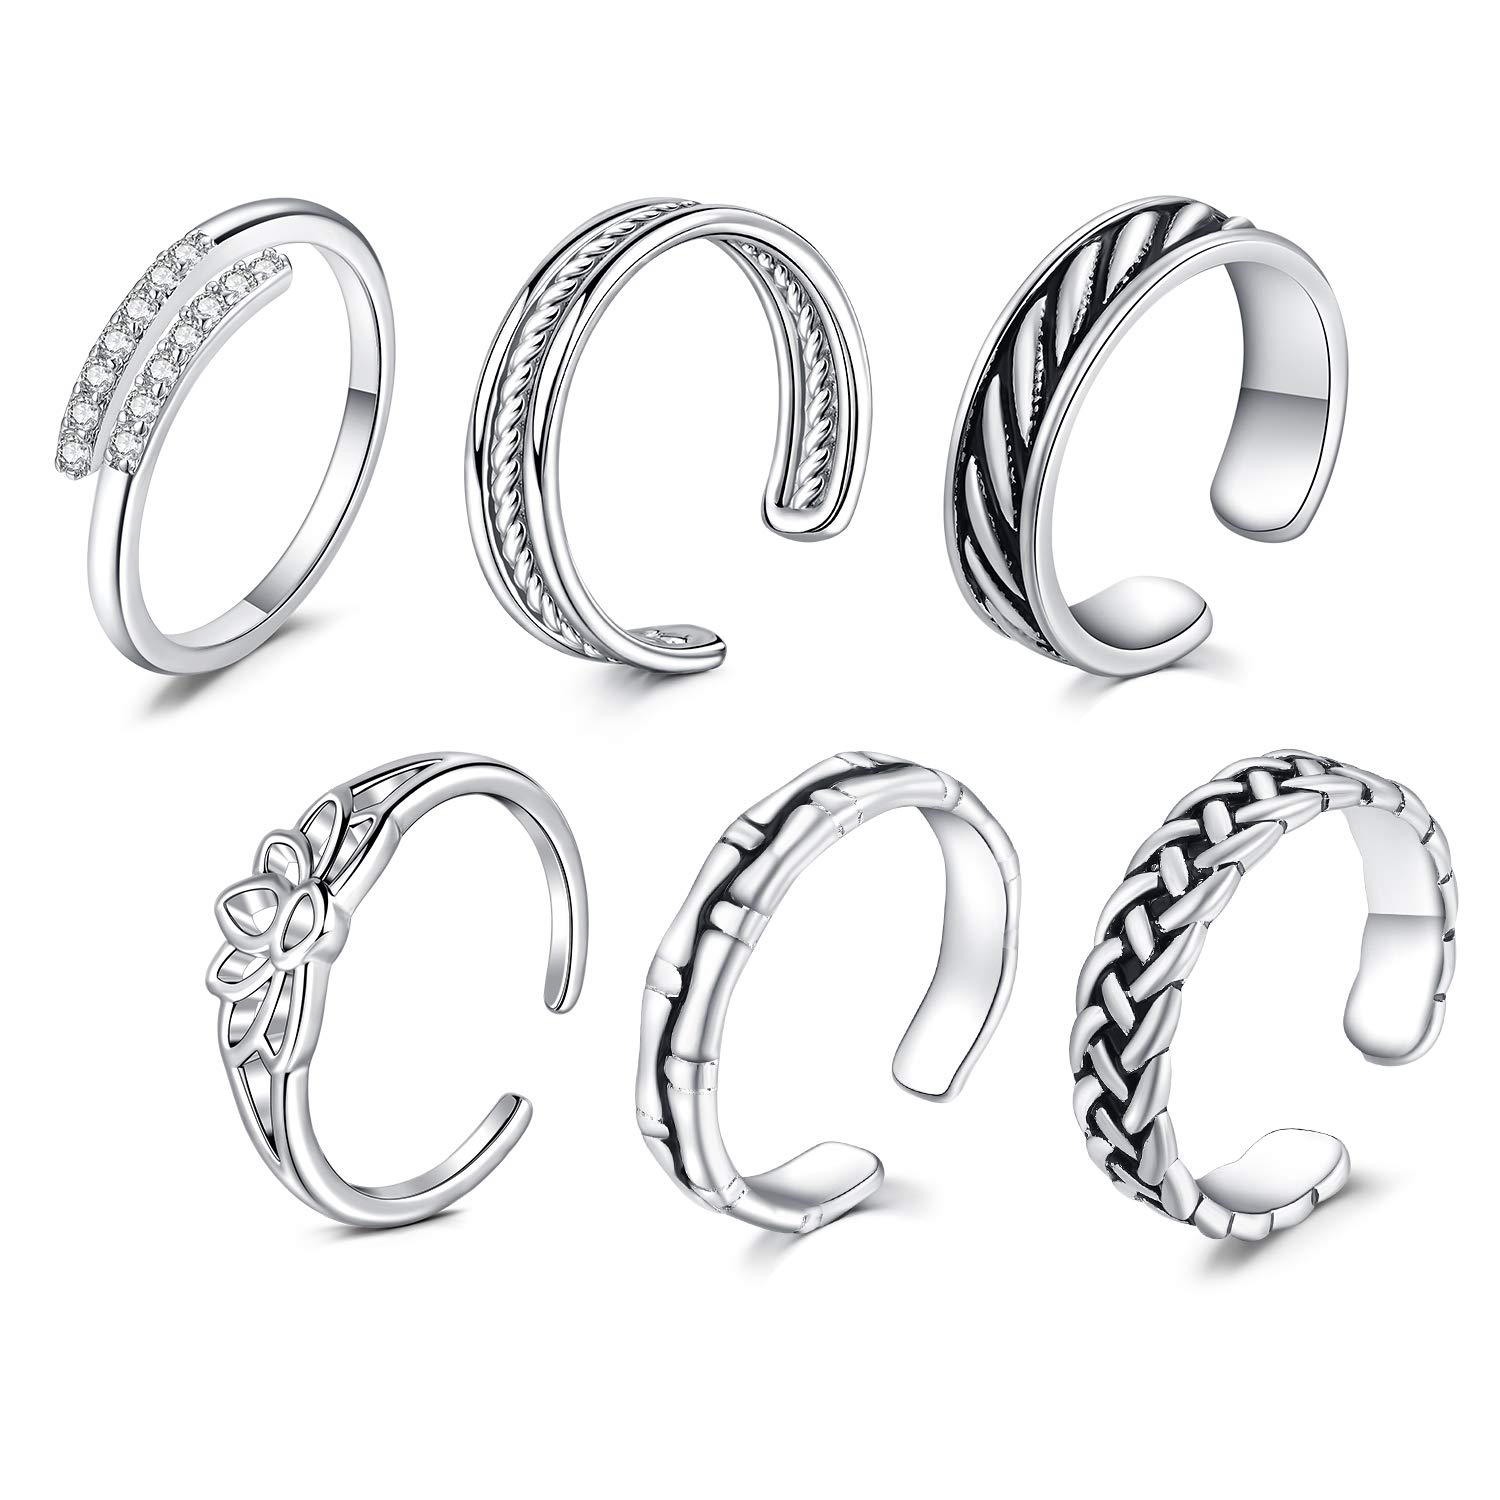 MODRSA Stainless Steel Toe Rings for Women Men Silver Pack Adjustable Simple Open Band Vintage Joint Knuckle Tail Ring Hypoallergenic Foot Fingers Jewelry